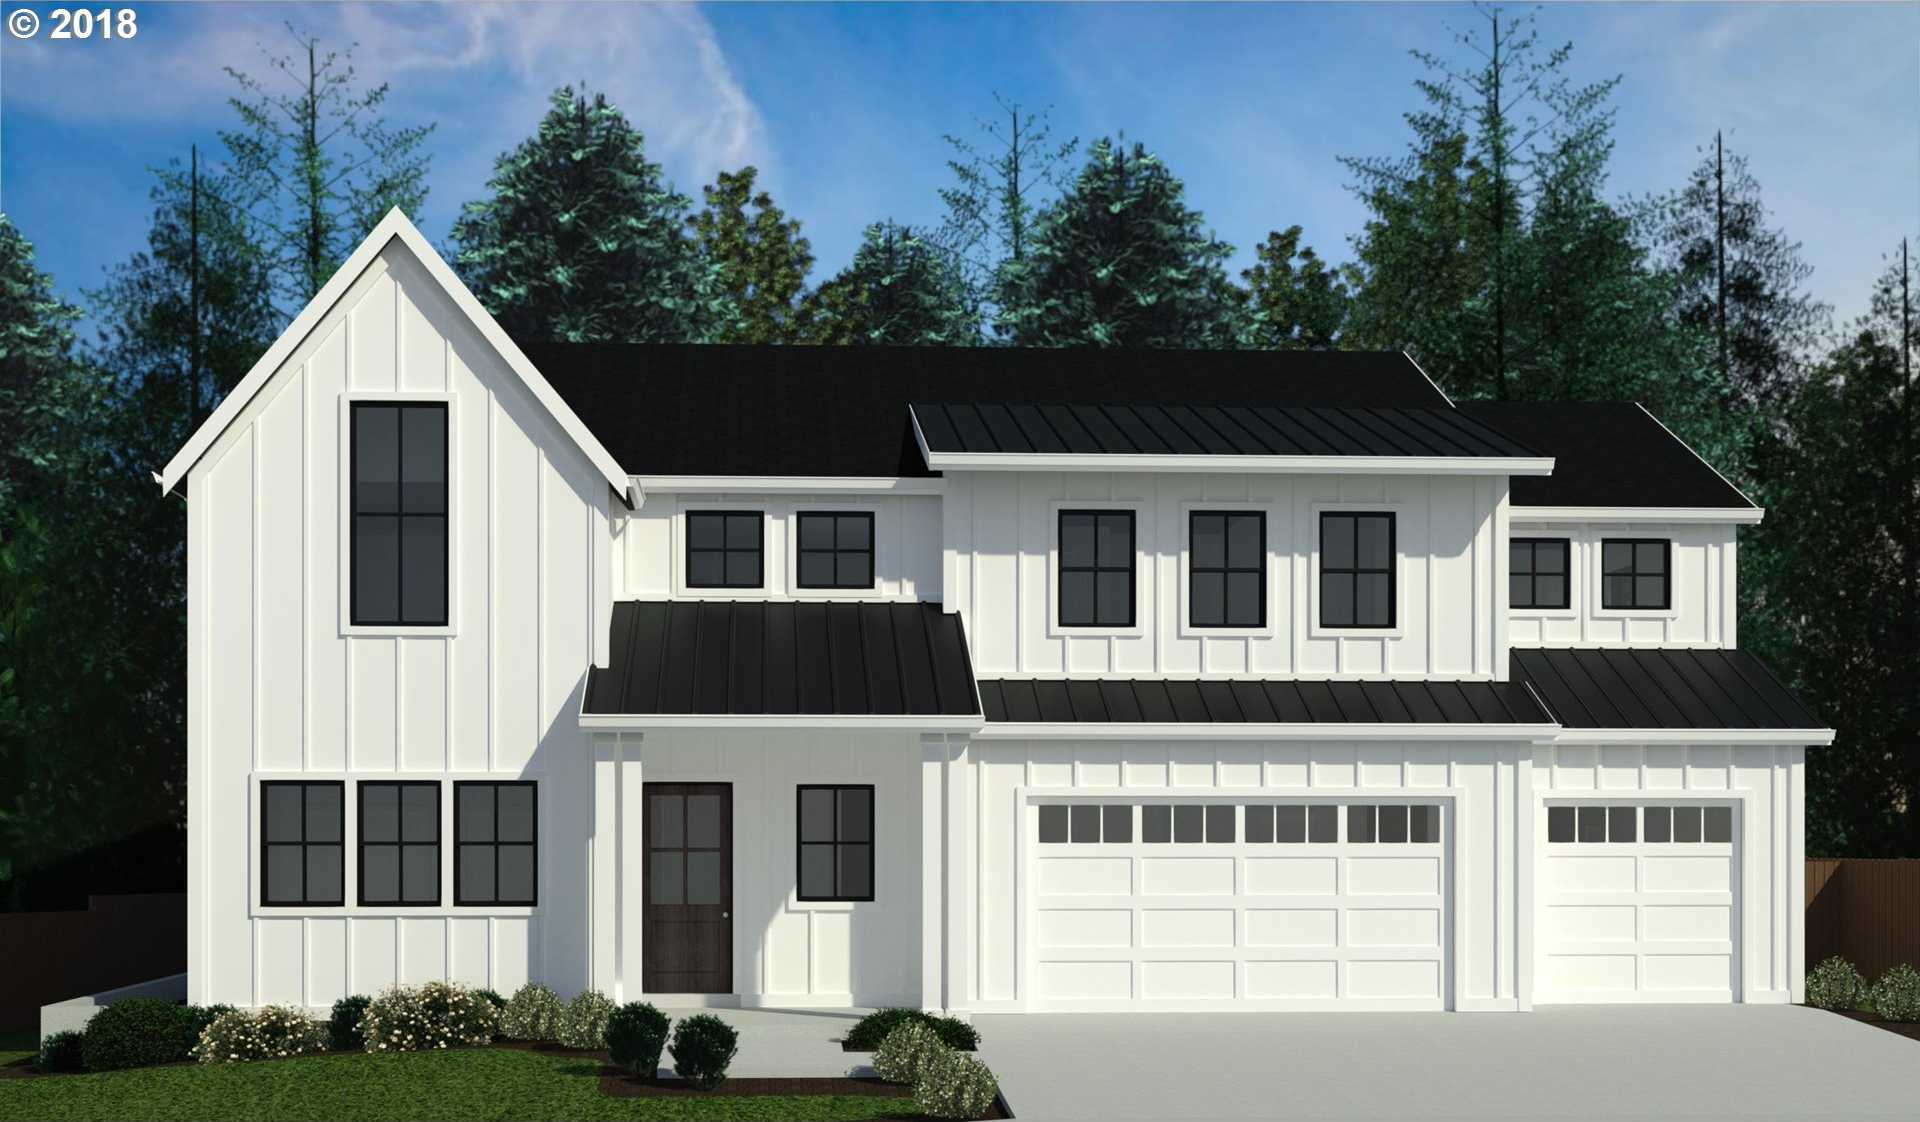 $1,029,900 - 4Br/4Ba -  for Sale in West Haven-sylvan, Portland